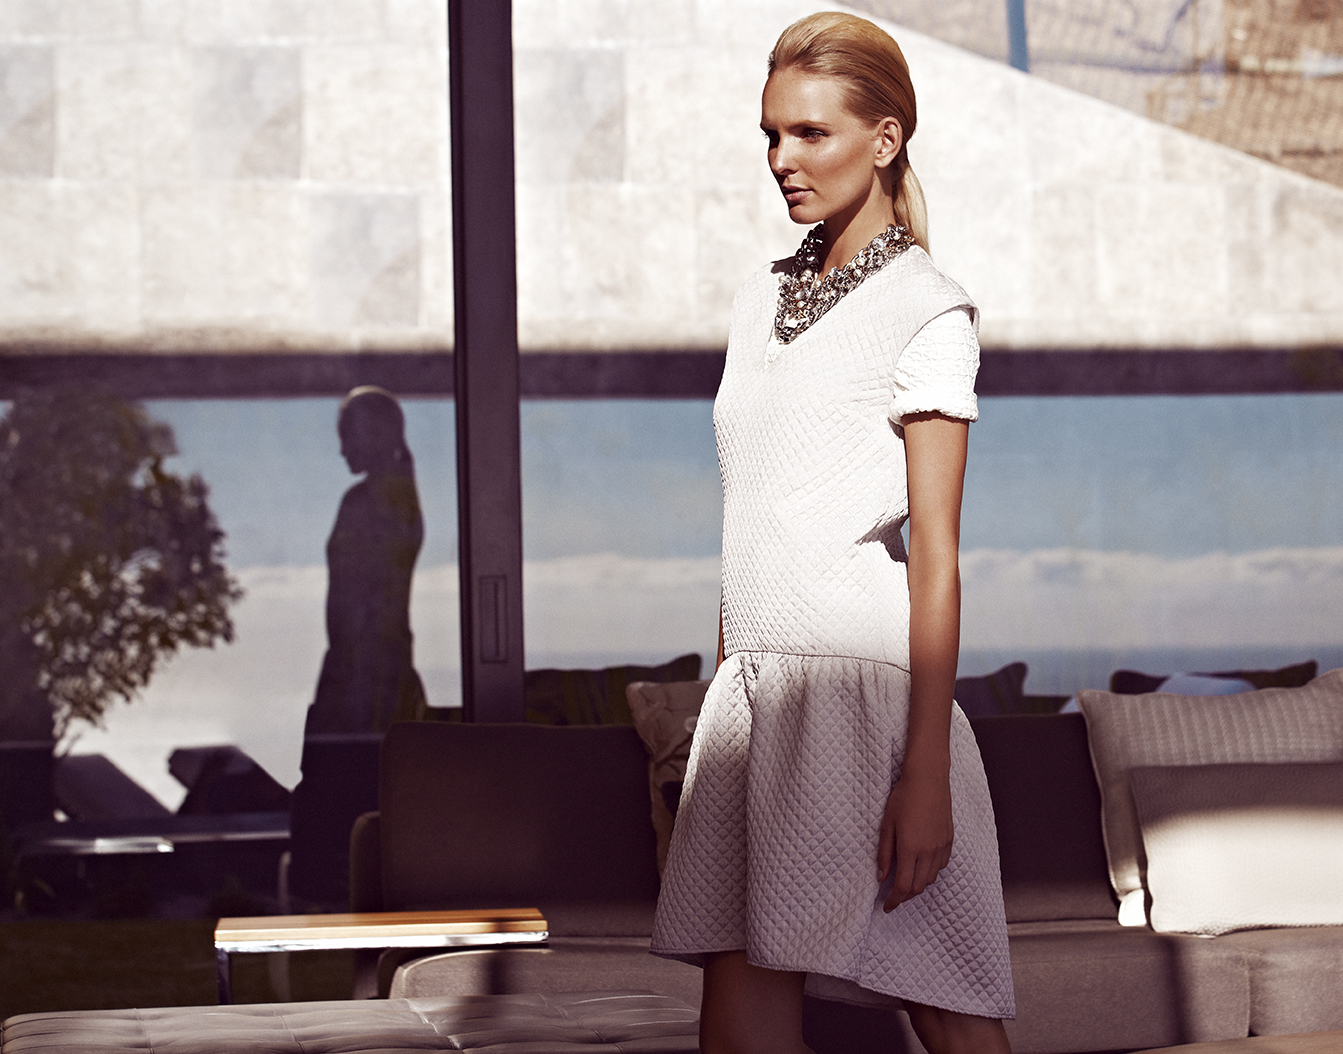 style_and_living_shot_07_2293.jpg